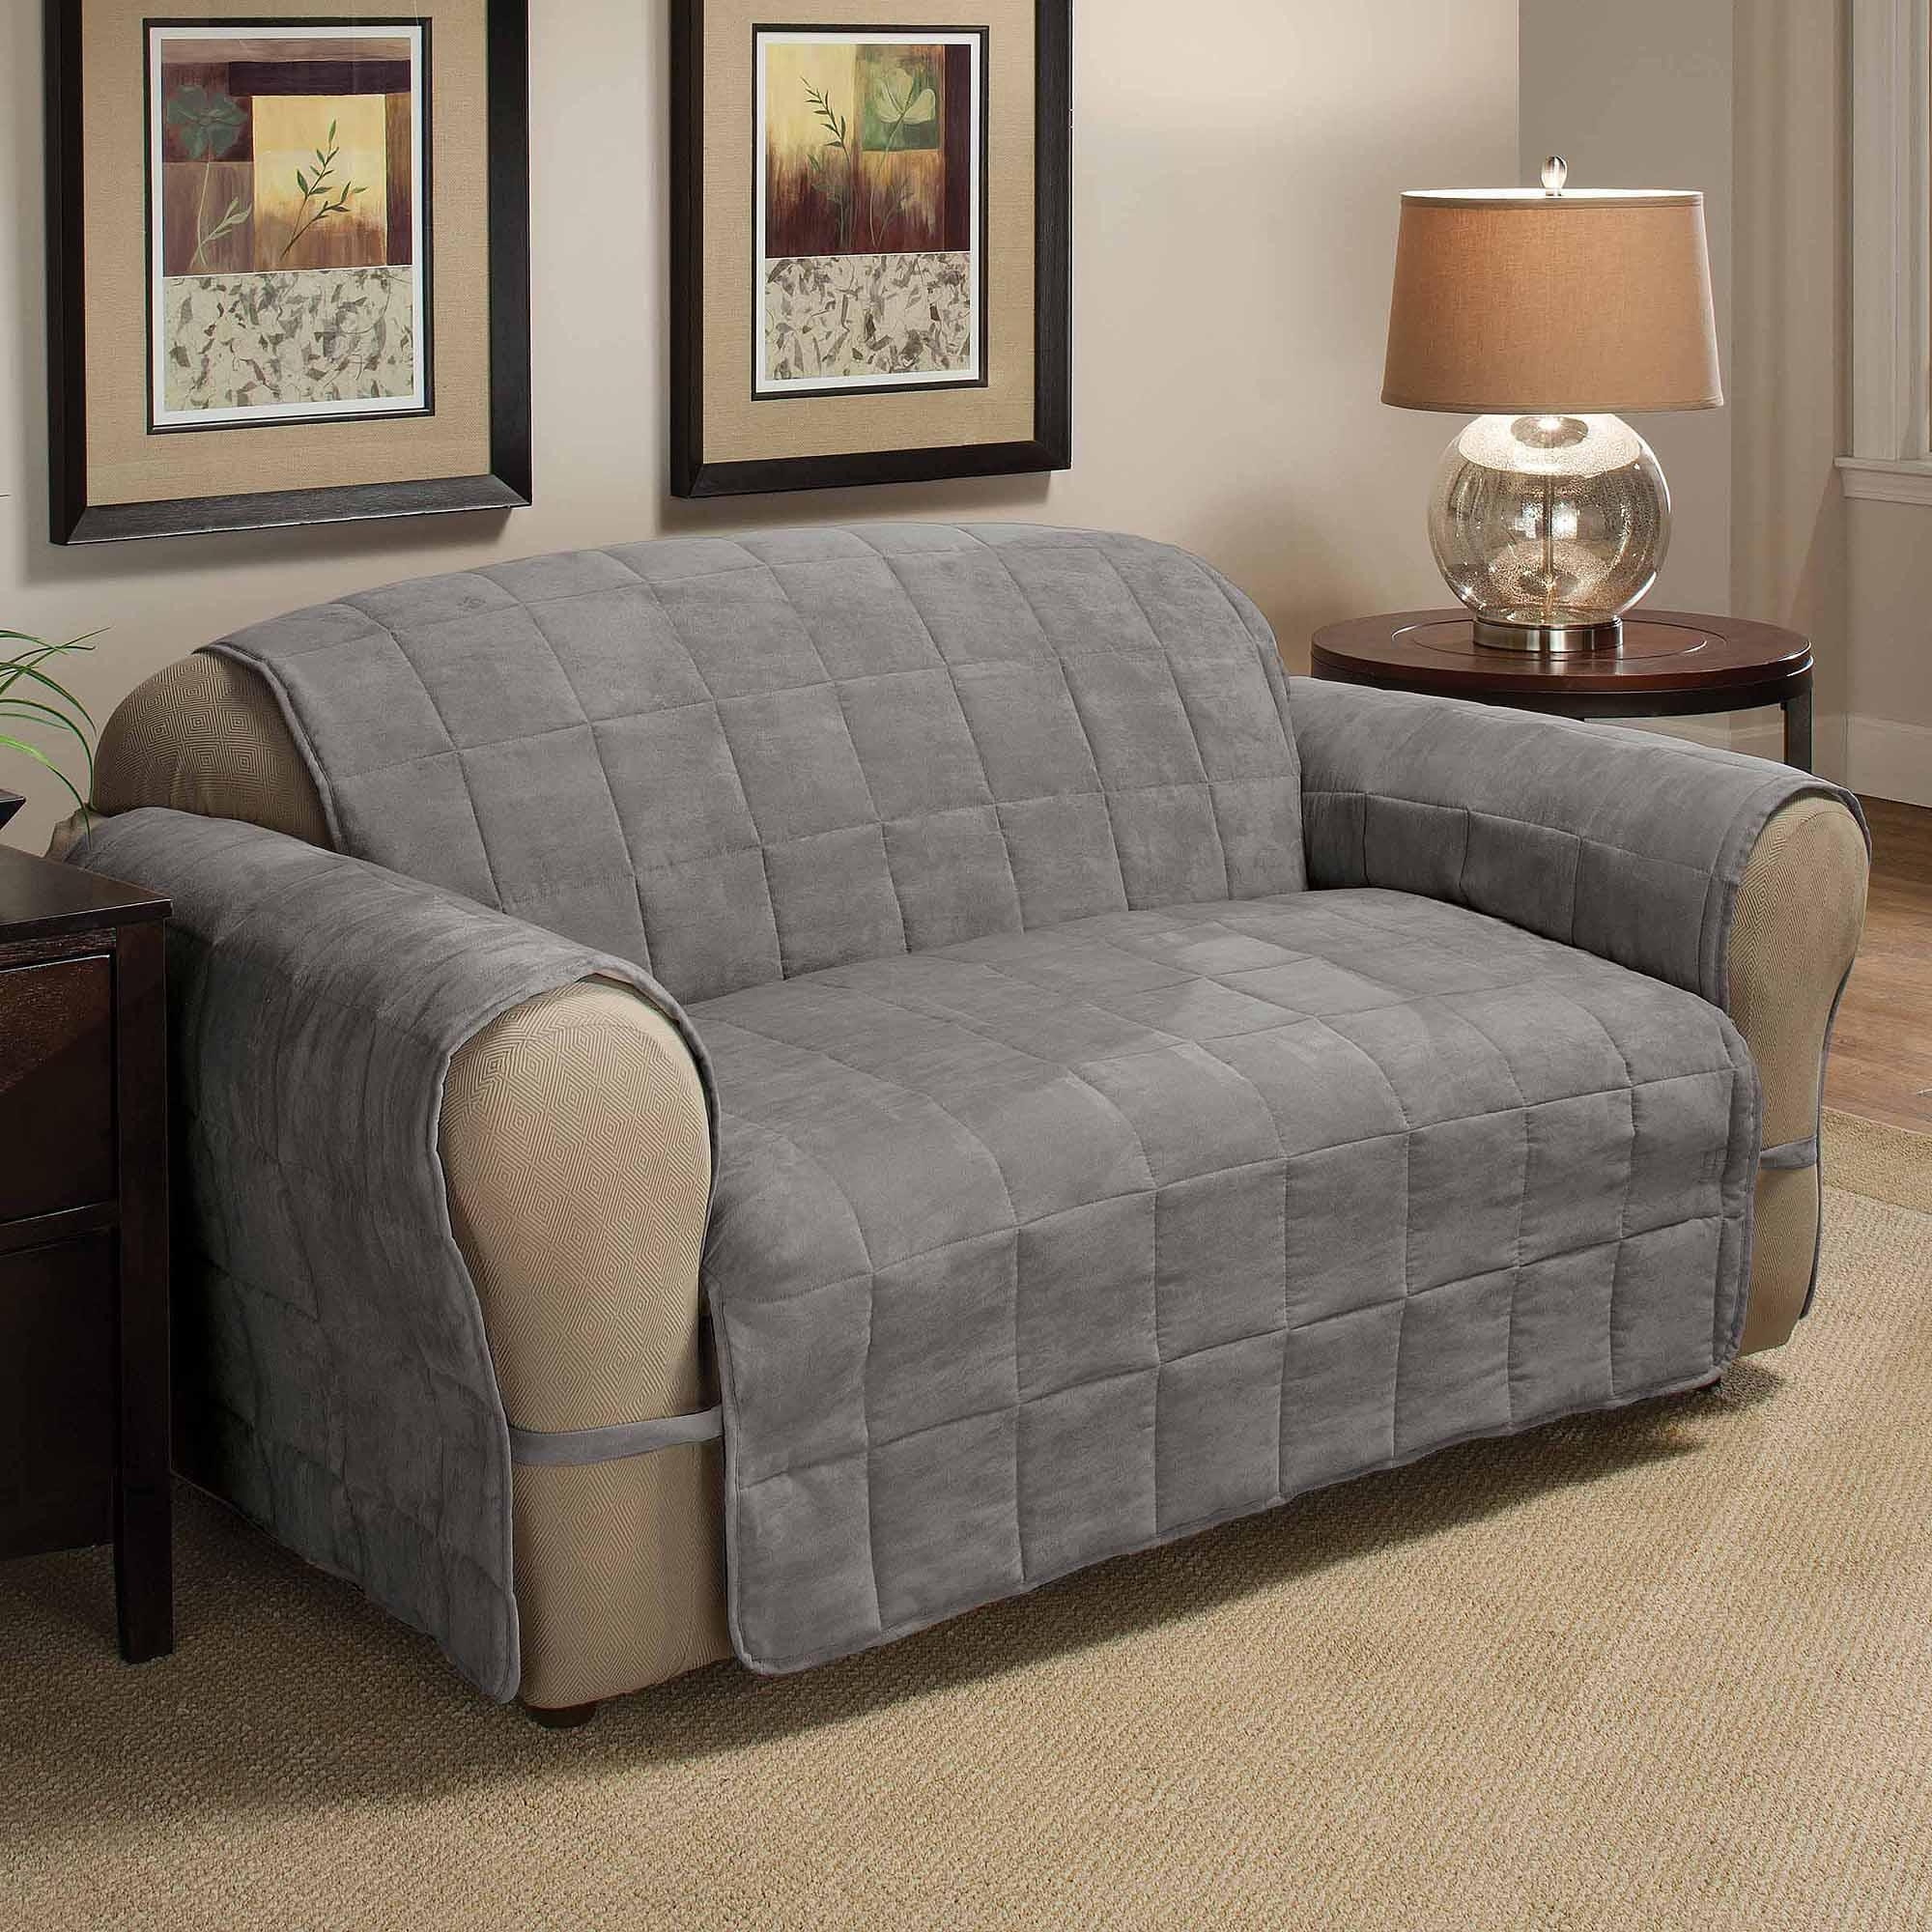 Slipcovers – Walmart Inside Walmart Slipcovers For Sofas (Image 18 of 20)